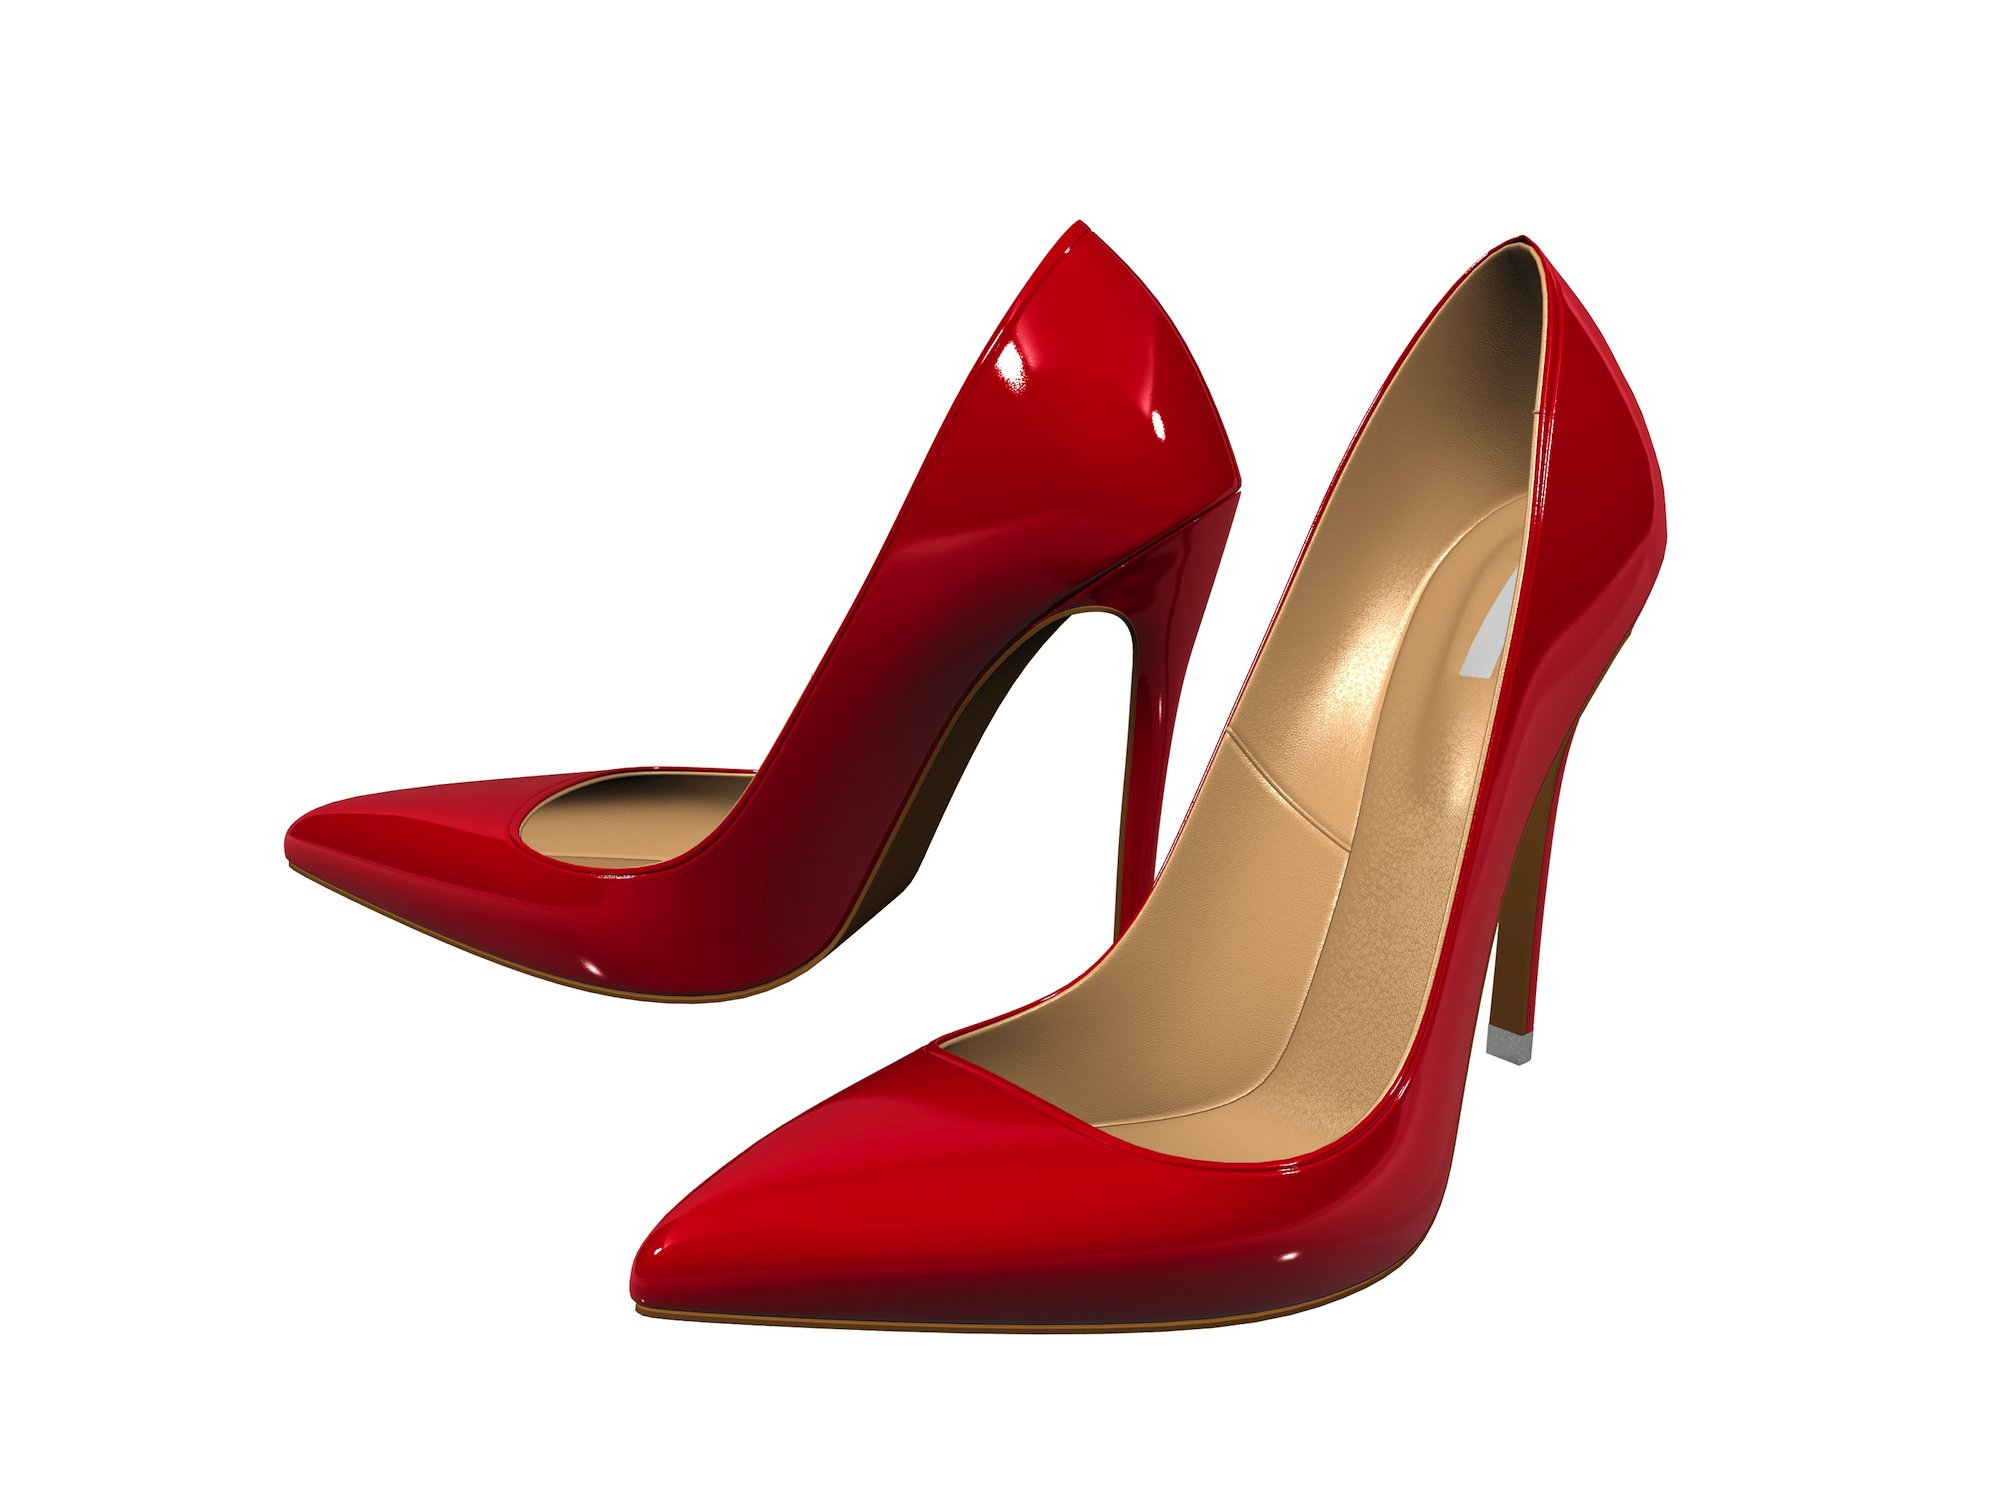 Female red high-heeled shoes over white background